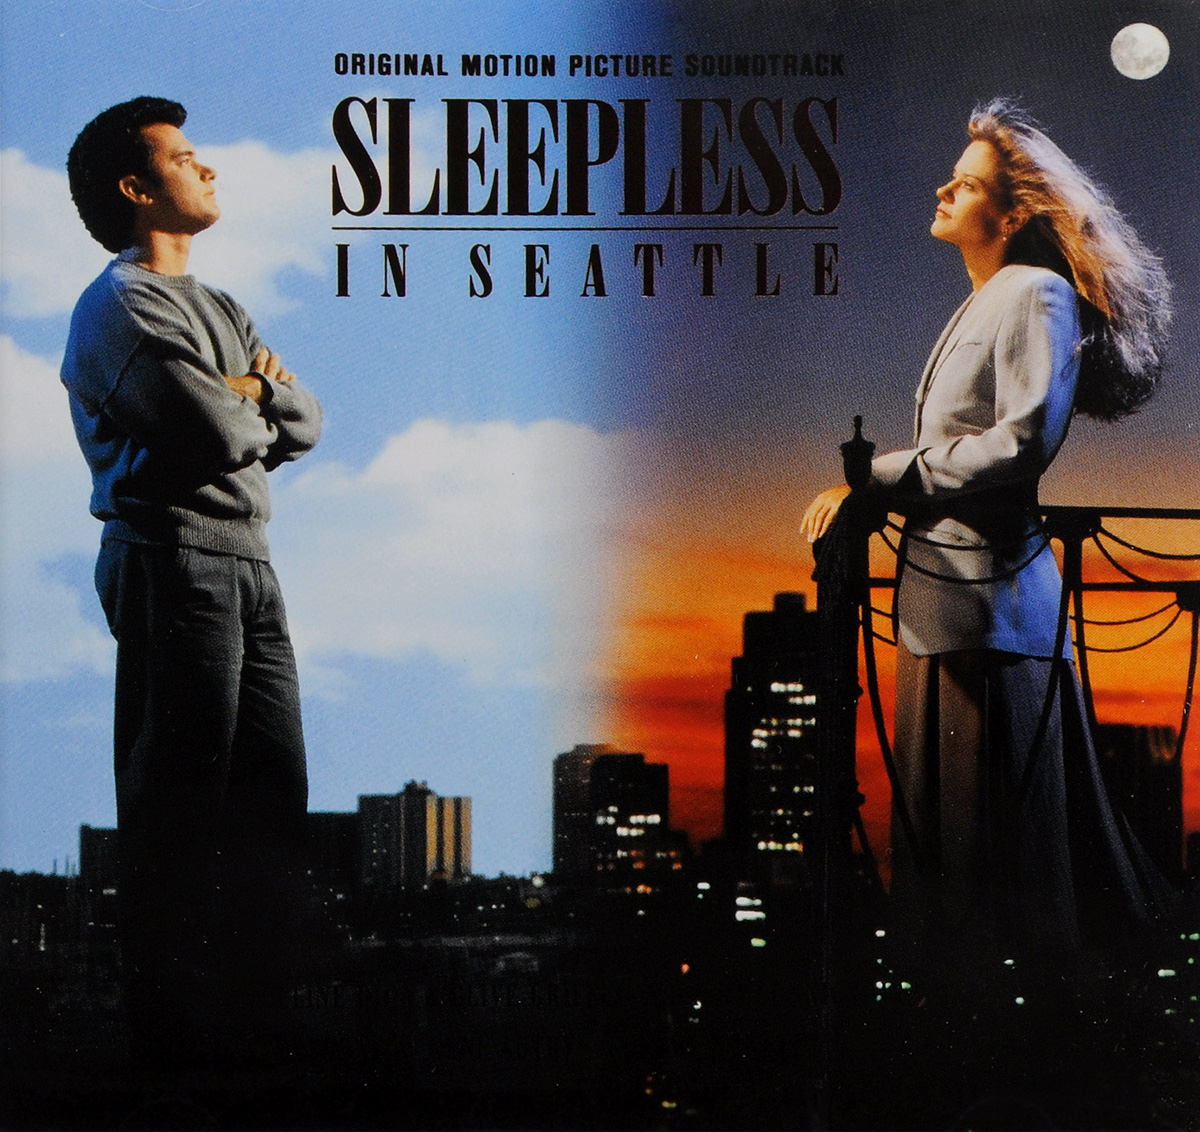 Sleepless in Seattle. Original Motion Picture Soundtrack